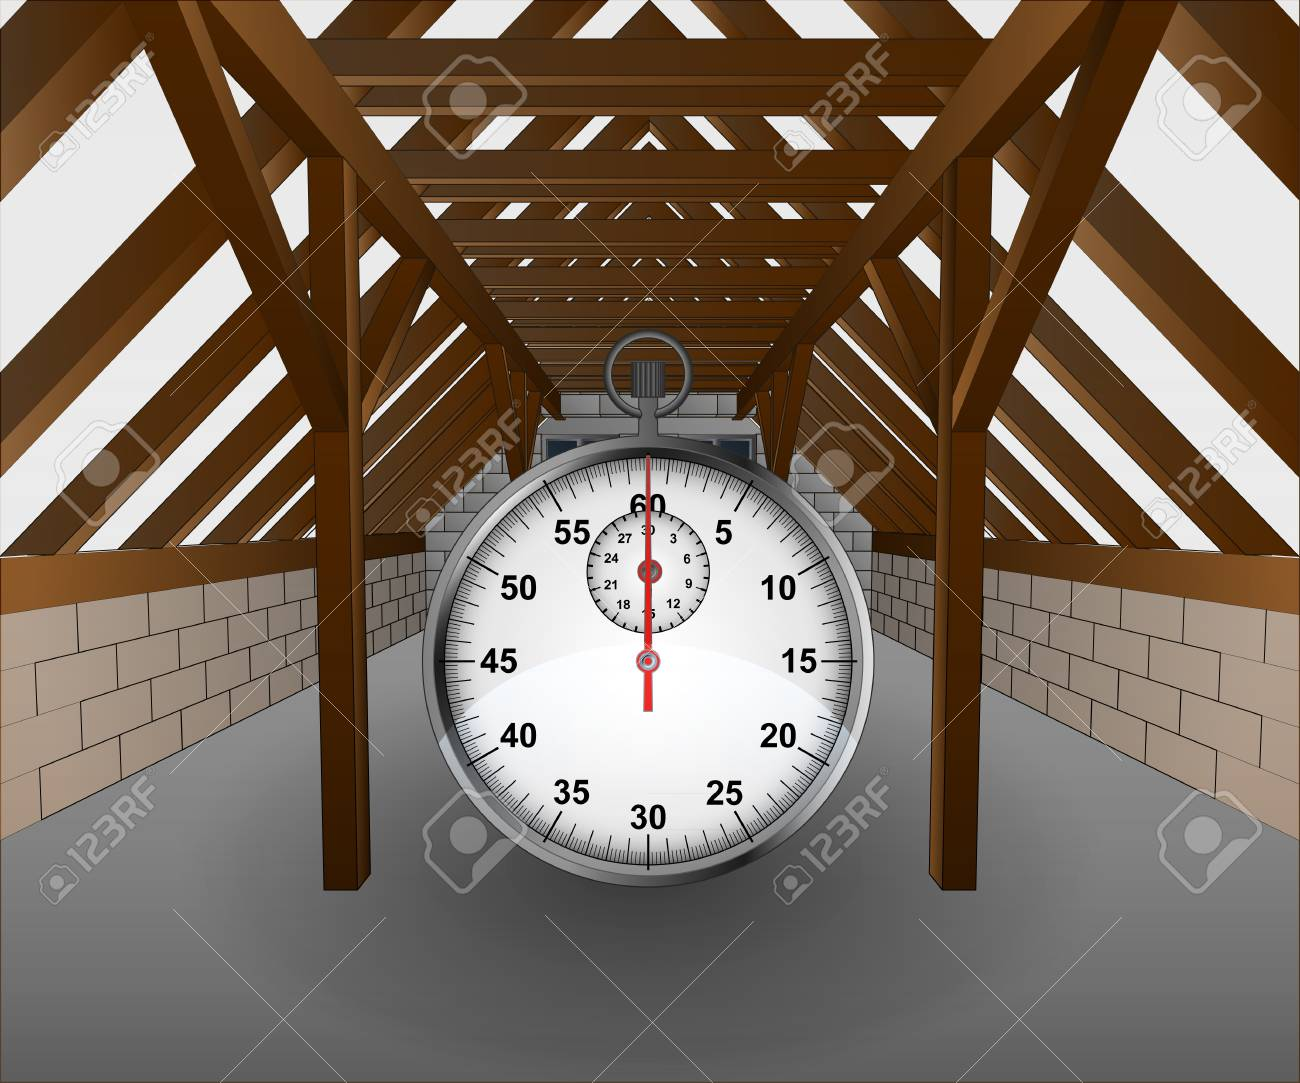 attic under construction with stopwatch illustration Stock Vector - 21659651